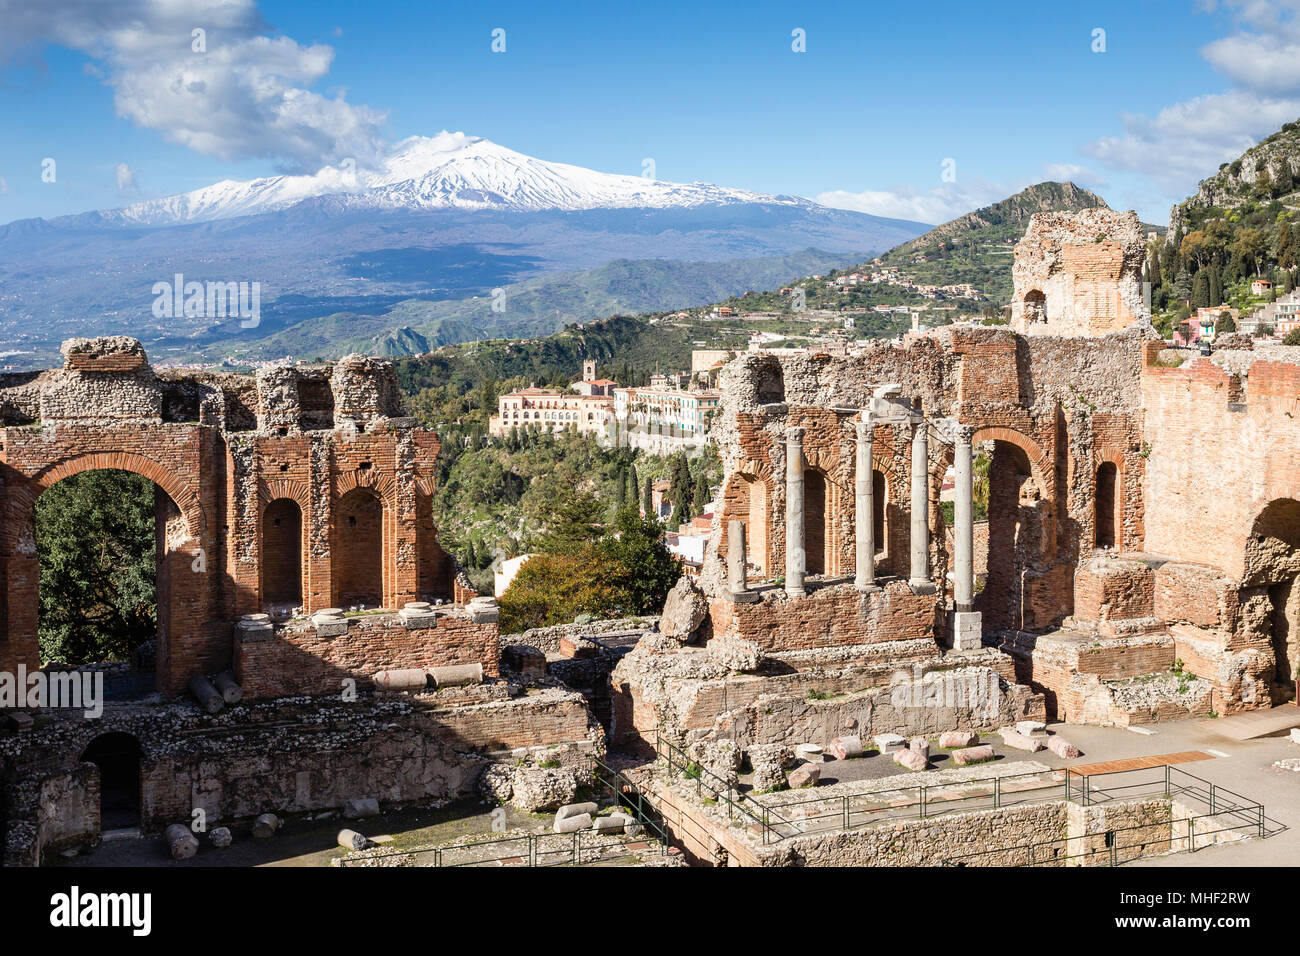 Ancient Greek-Roman theatre of Taormina with town and Mount Etna, Sicily. - Stock Image